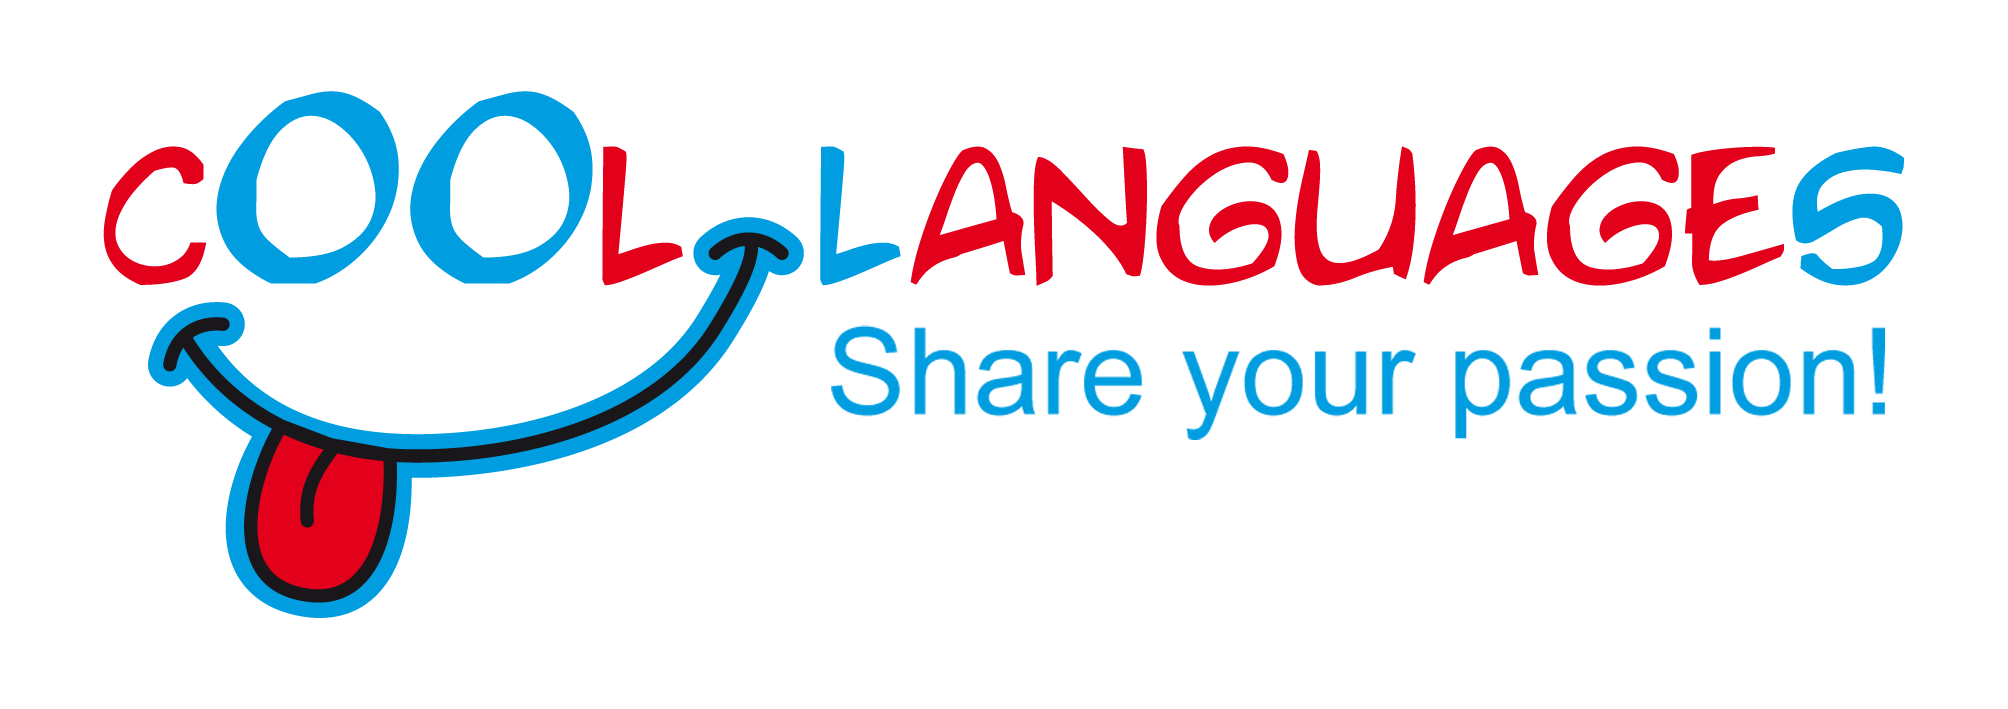 Copy of Copy of Copy of Cool Languages - Share your passion